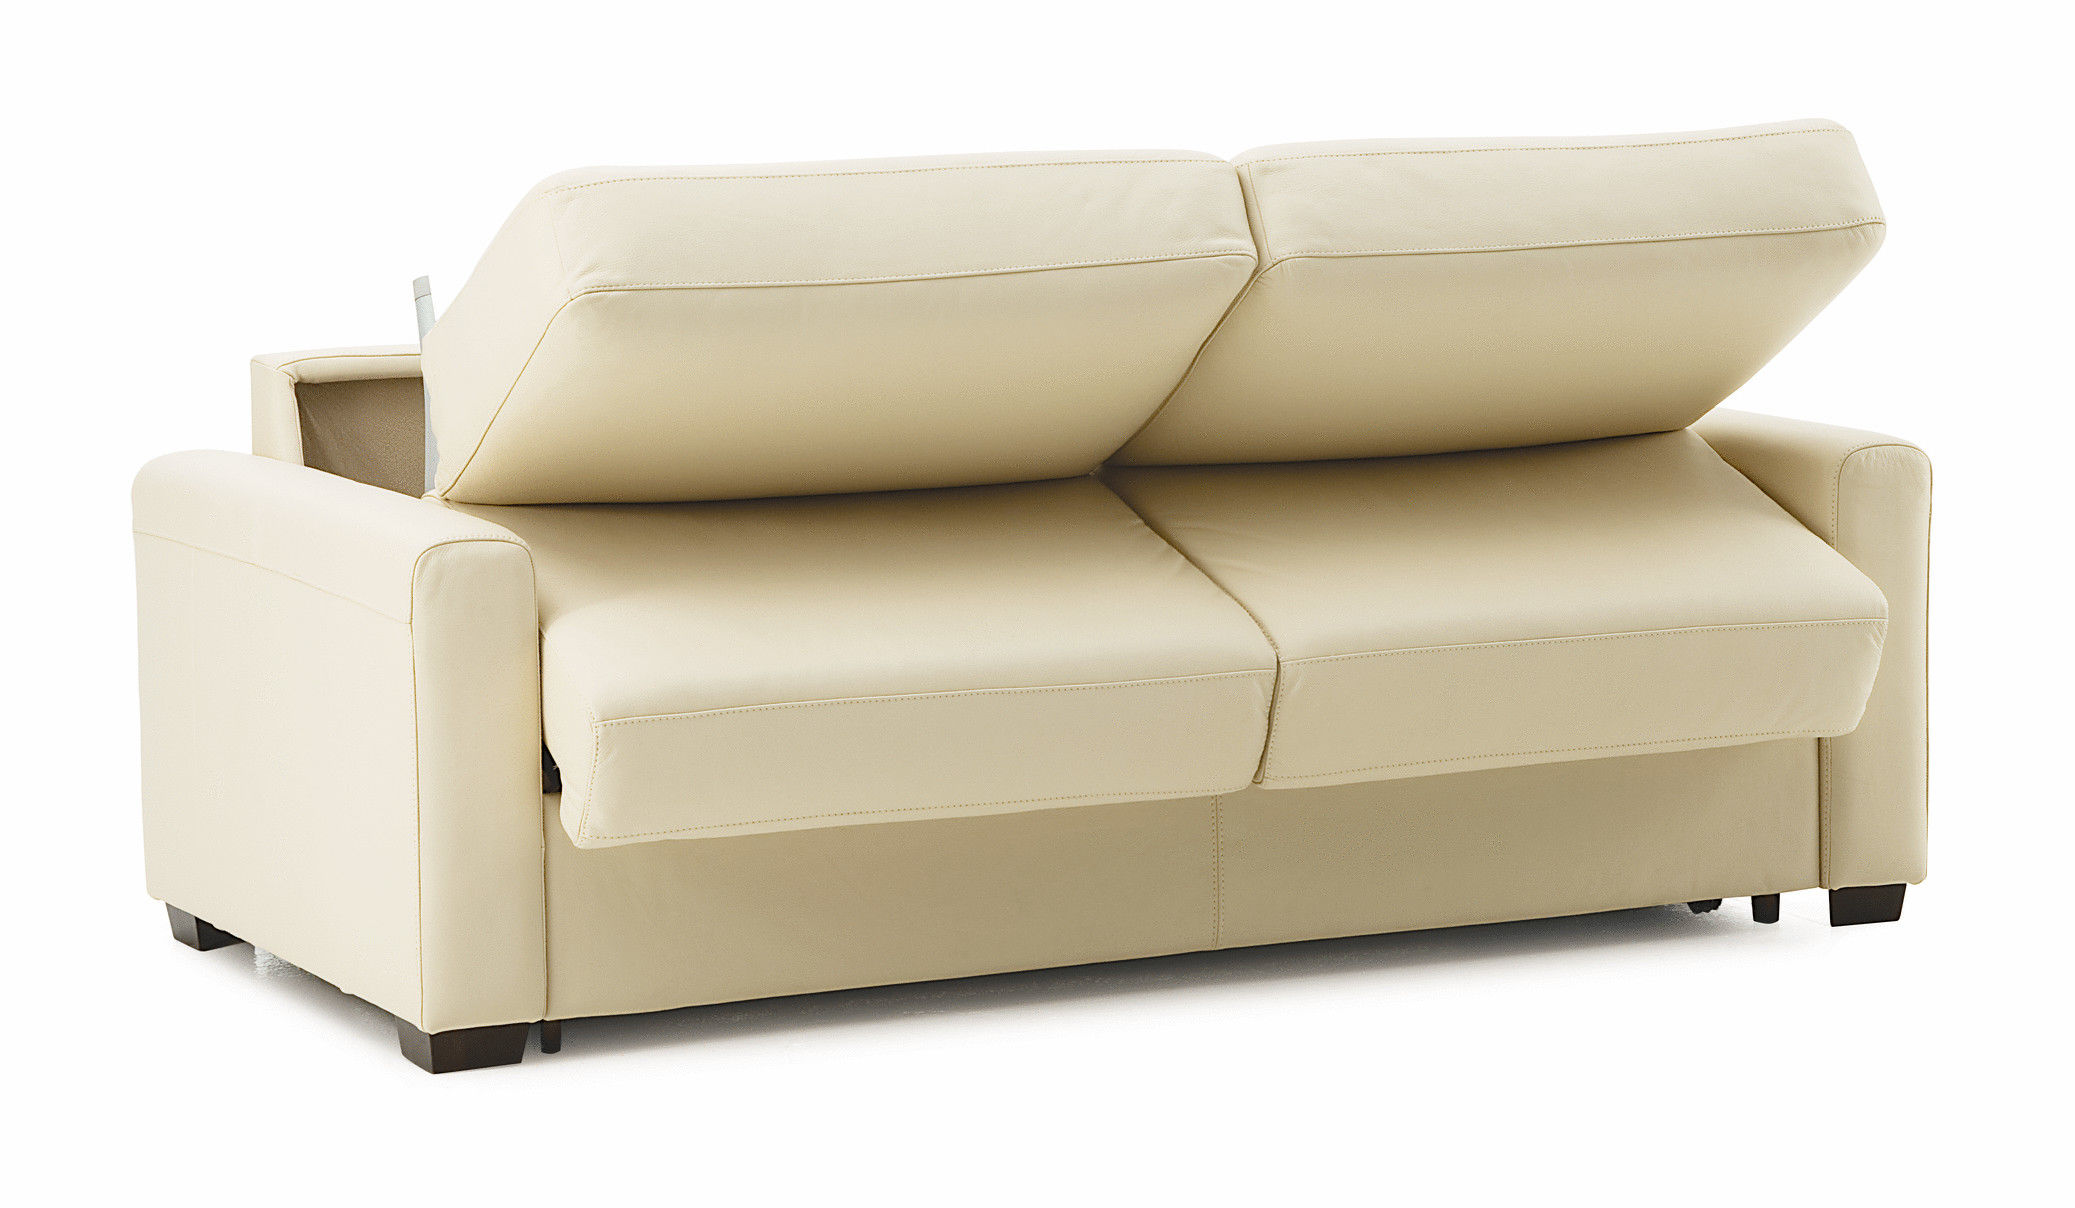 contemporary tufted sofa sectional layout-Beautiful Tufted sofa Sectional Model